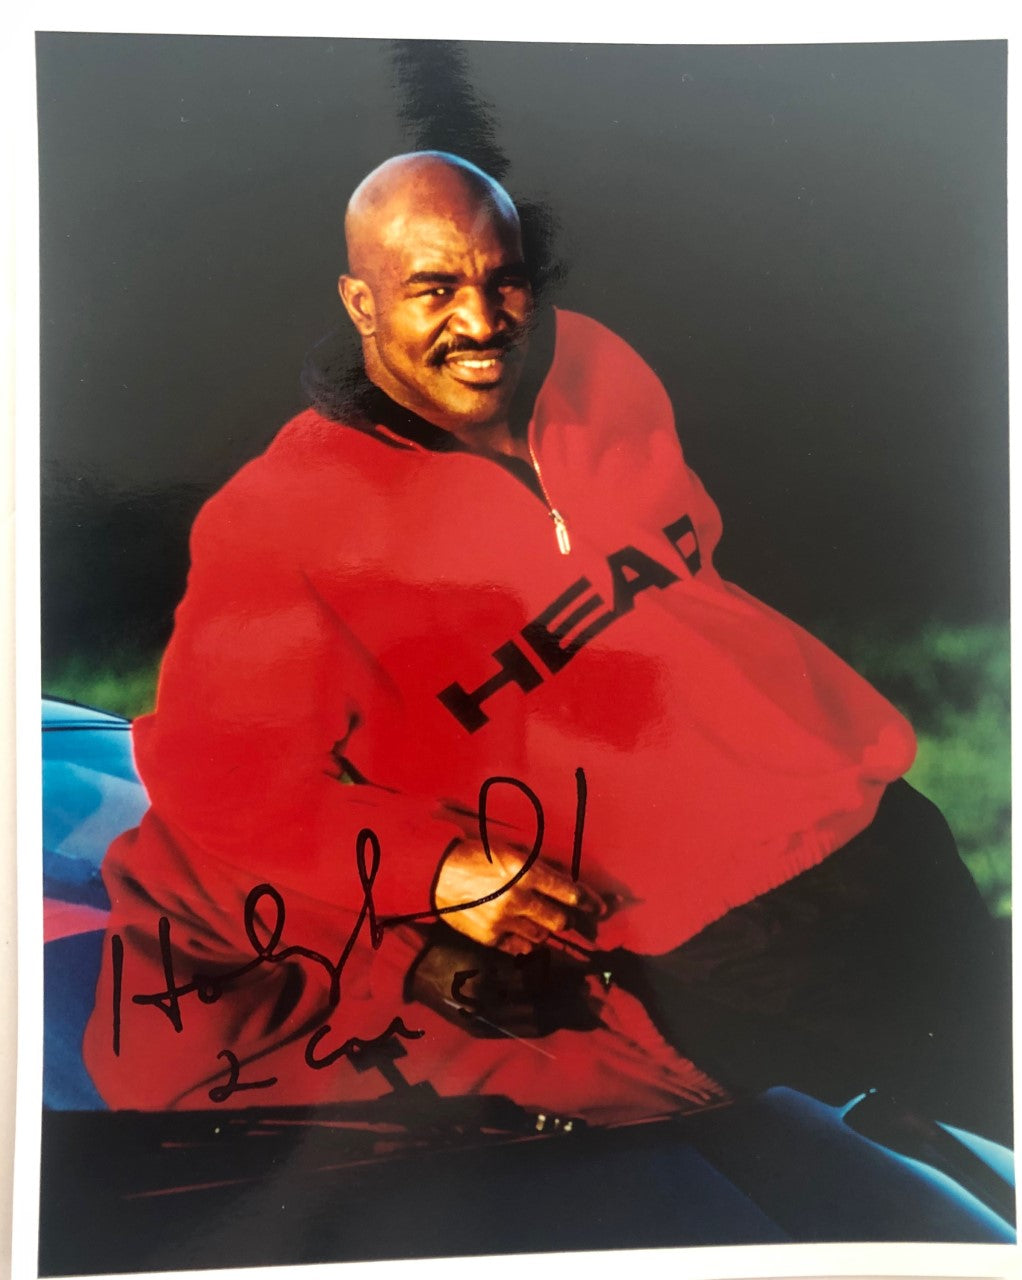 Boxing Evander Holyfield 8x10 Photo Signed Autographed Rare